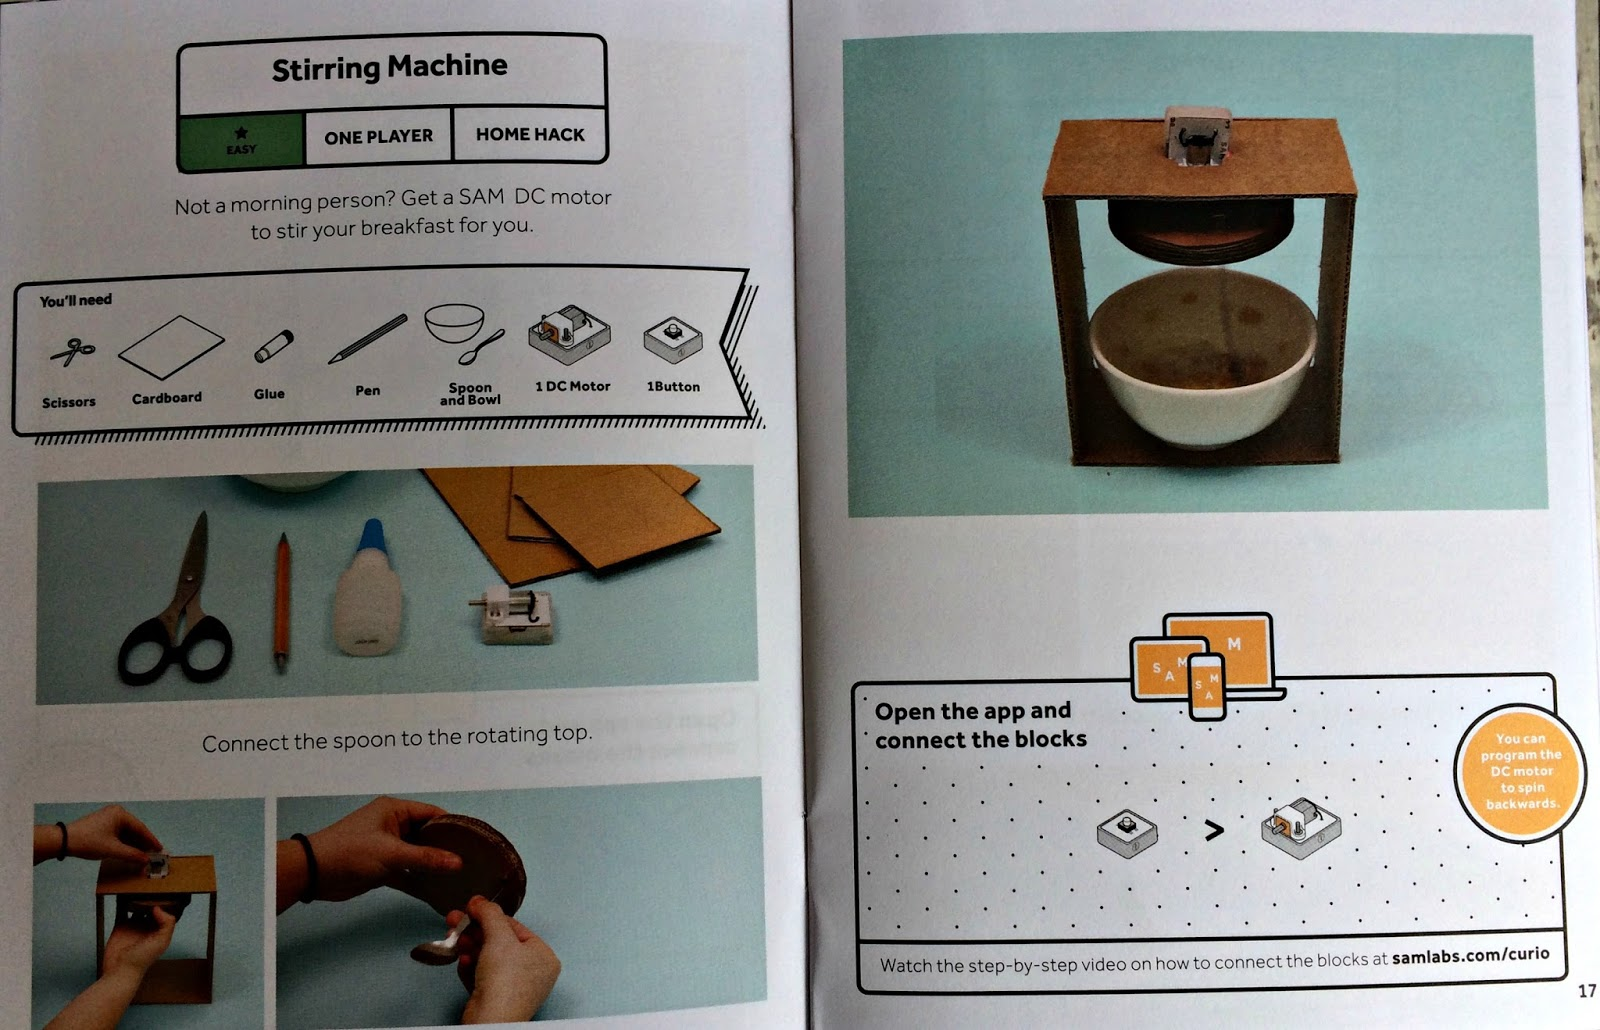 Instructions on how to make a stirring machine